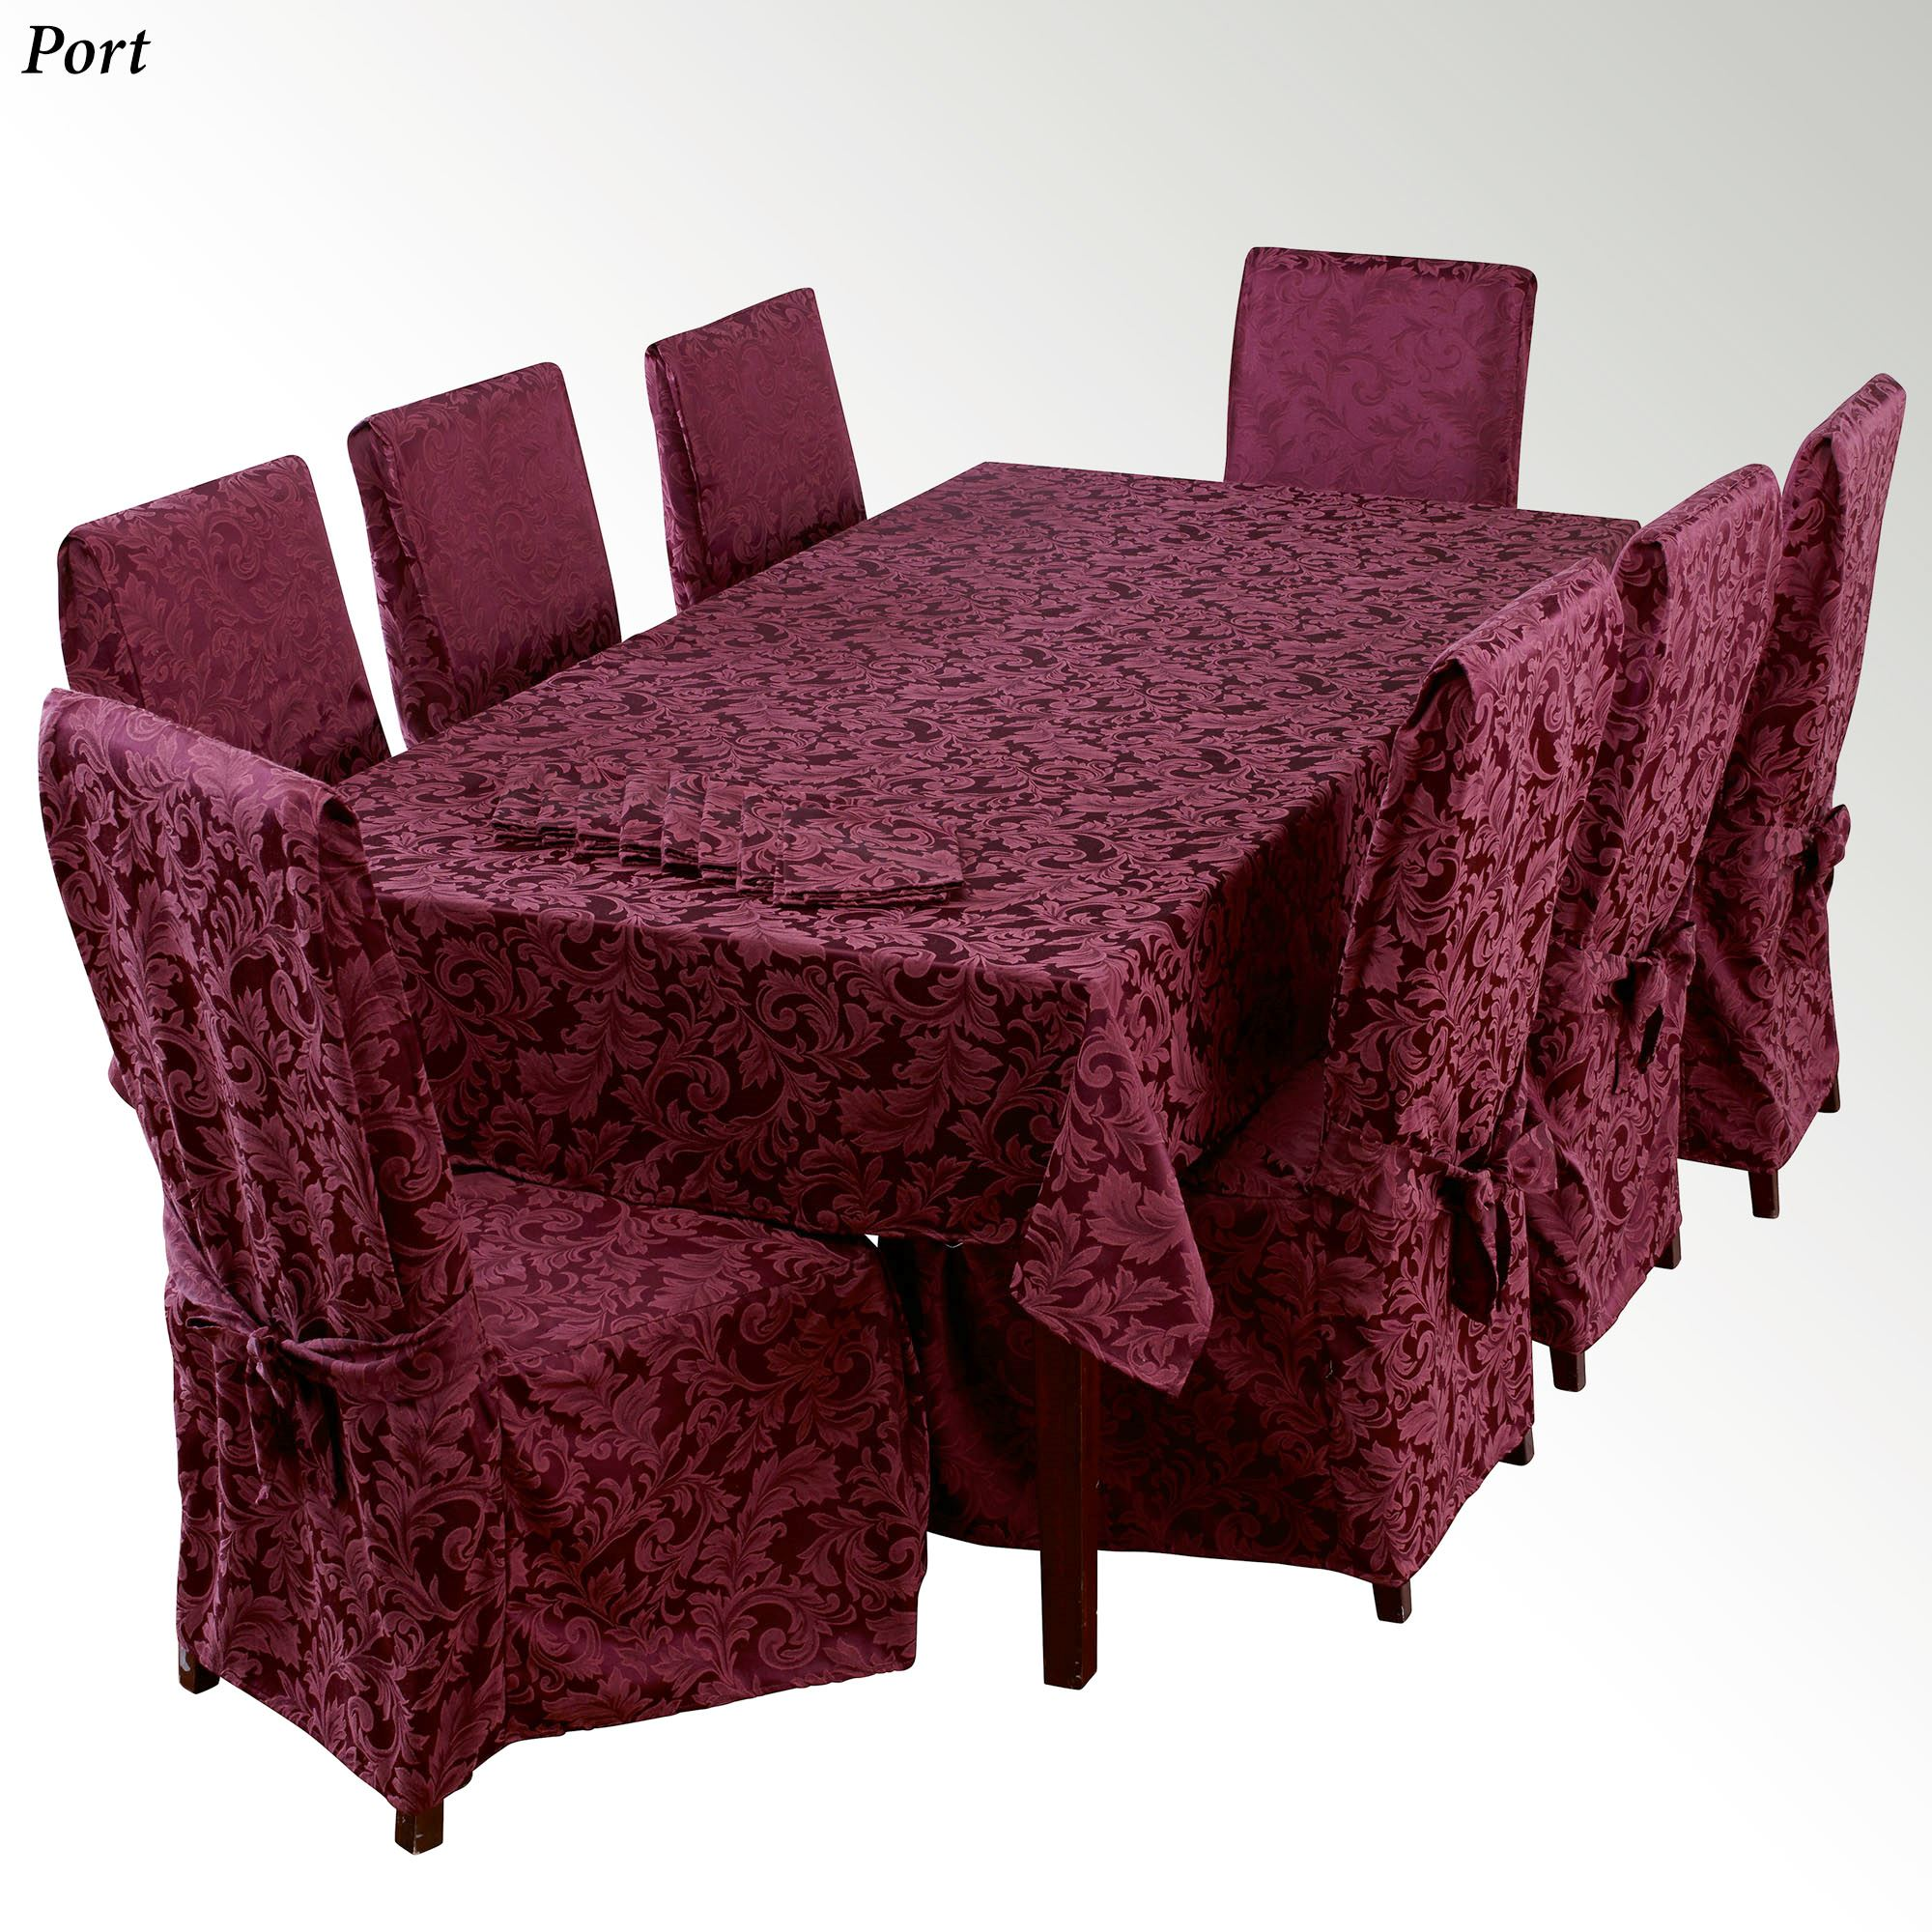 Dining Room Table Linens: Varese 13-17 Pc Damask Dining Room Table Linen Set